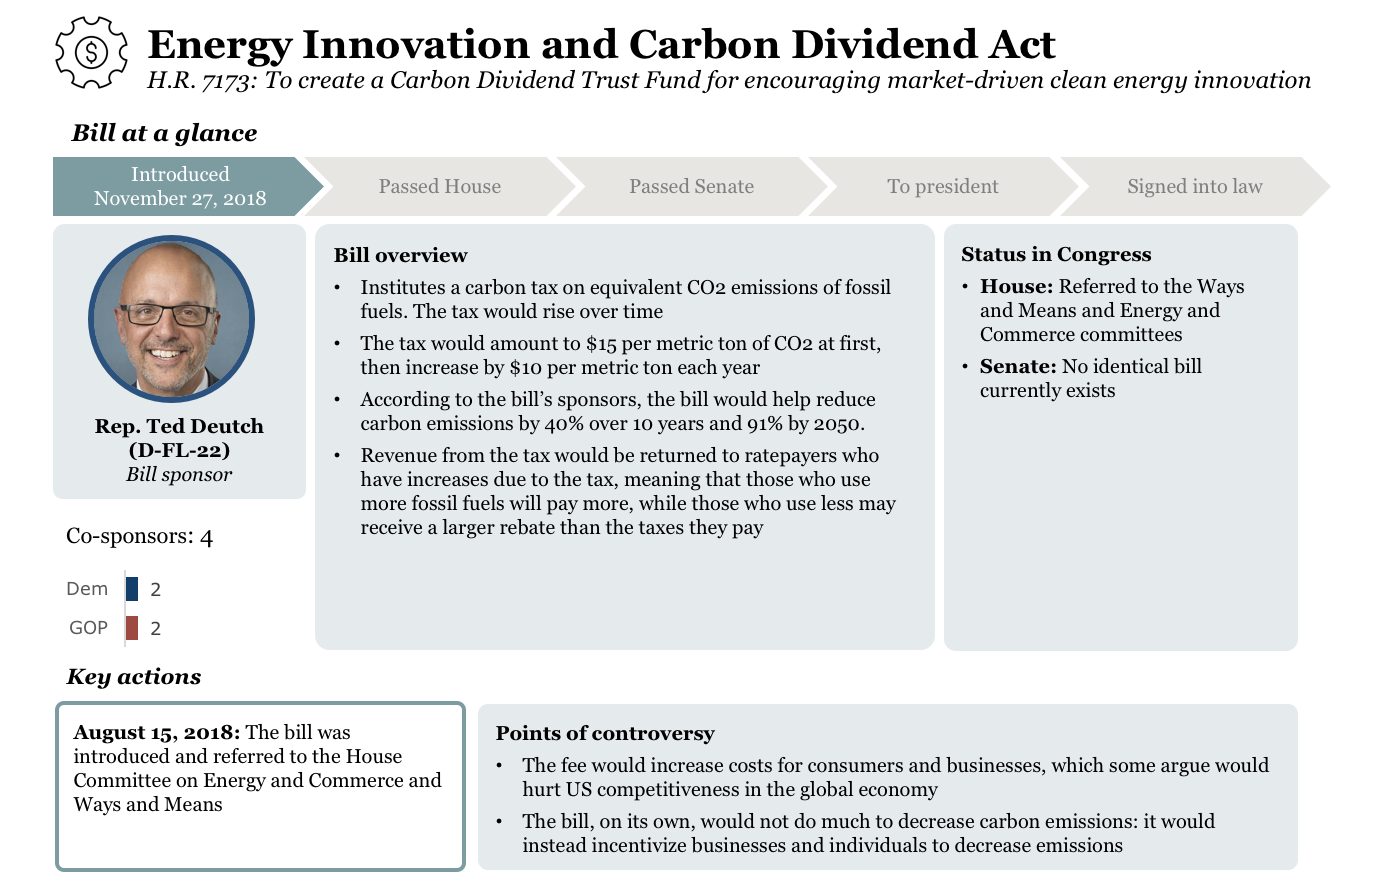 Energy Innovation and Carbon Dividend Act